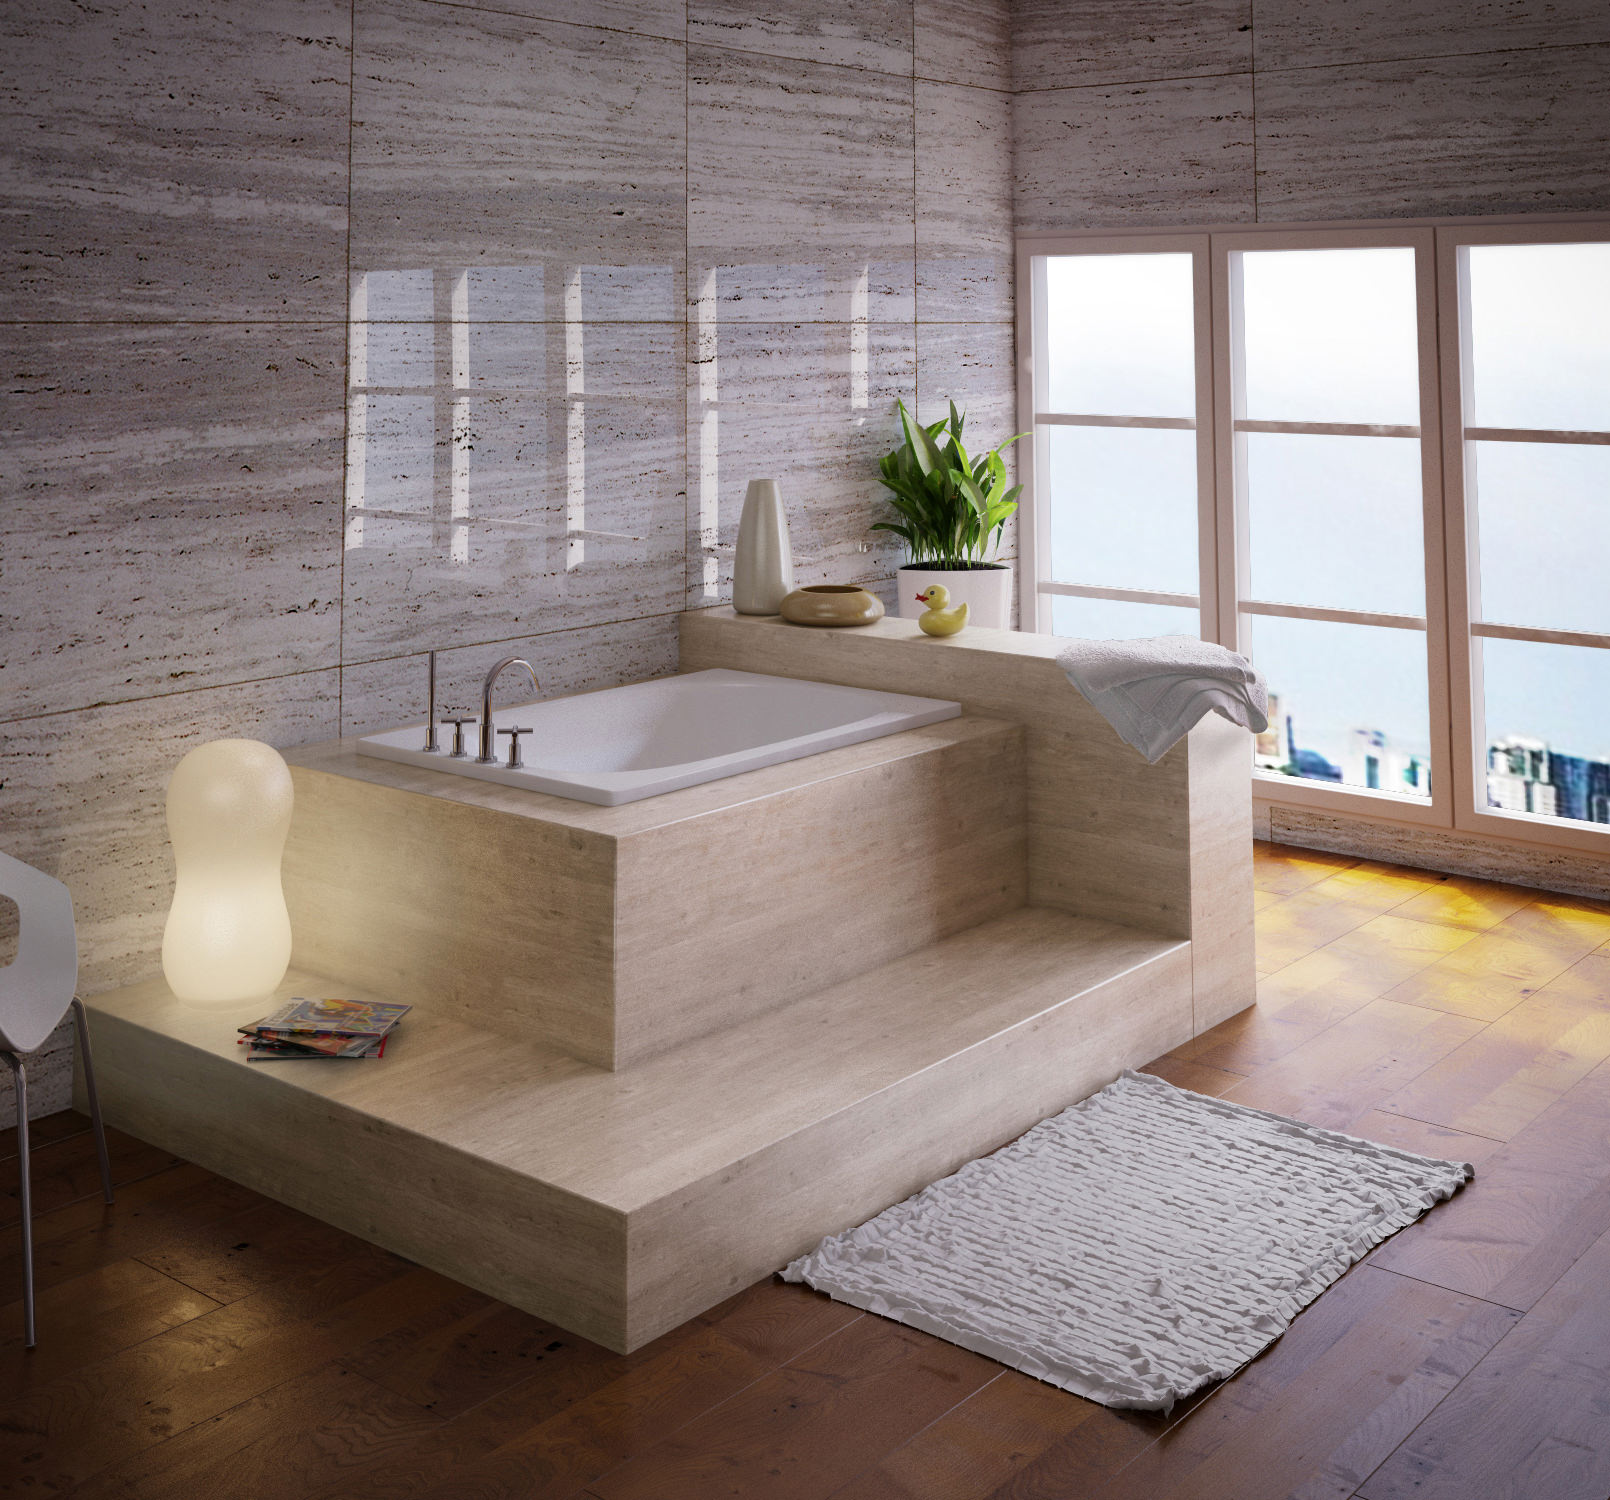 Bette Labette Rectangular Super Steel Bath 1200 X 700mm